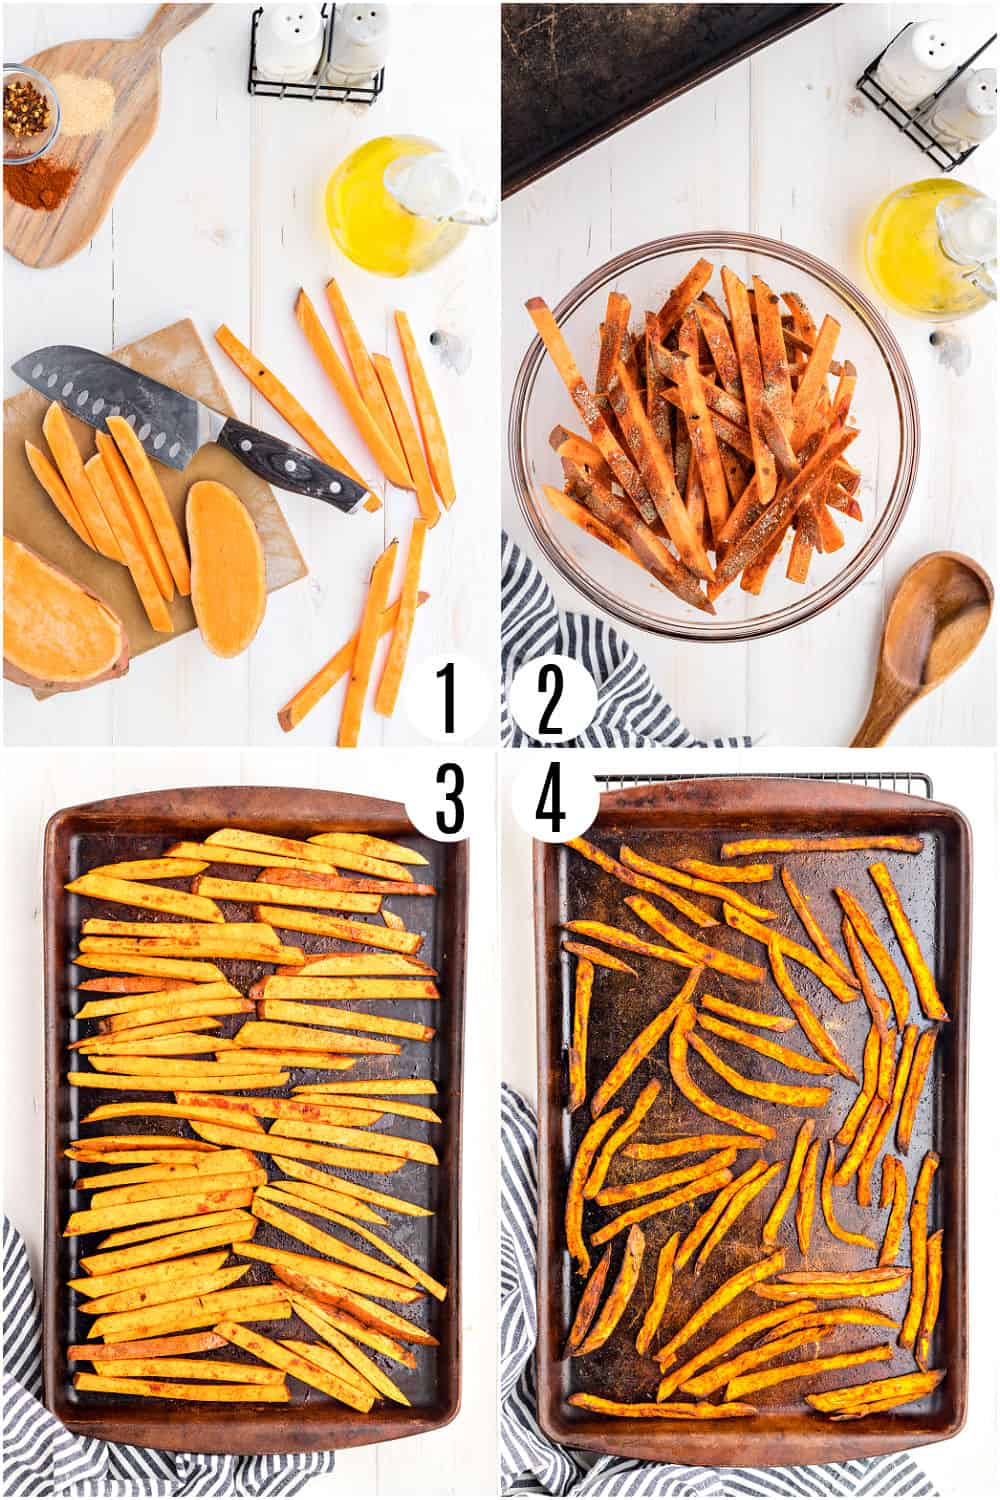 Step by step photos showing how to make sweet potato french fries.